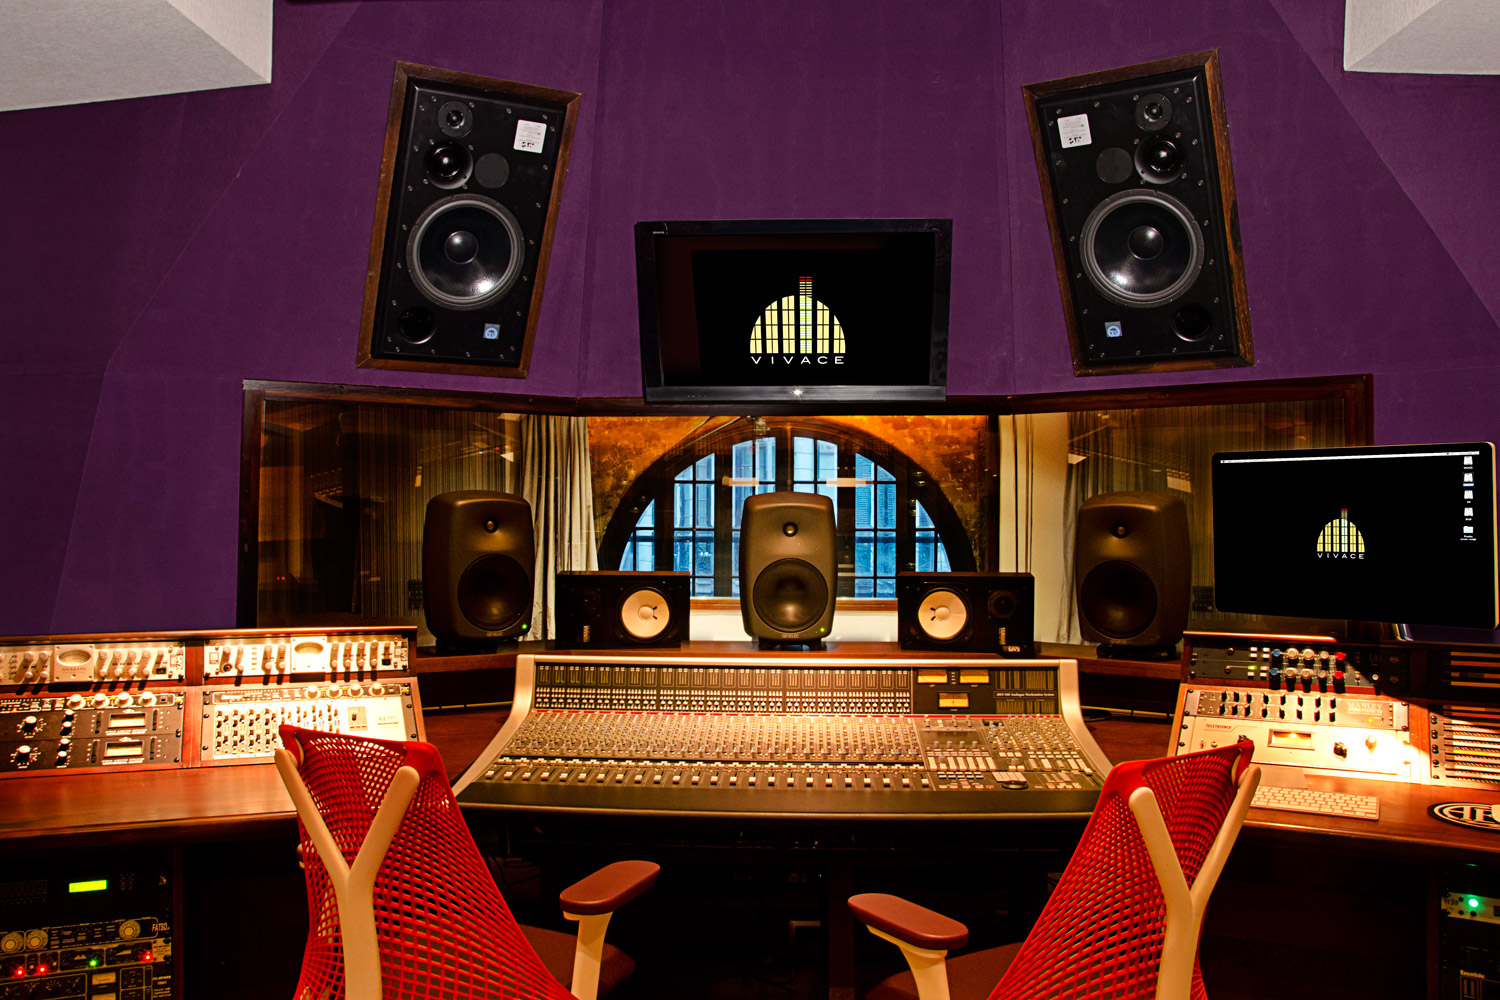 Vivace Music Studio in Montevideo, Uruguay. Professional recording studio designed and built by WSDG. Project manager WSDG partner Sergio Molho, and Representative Gonzalo Ruiz. Control Room A front view.